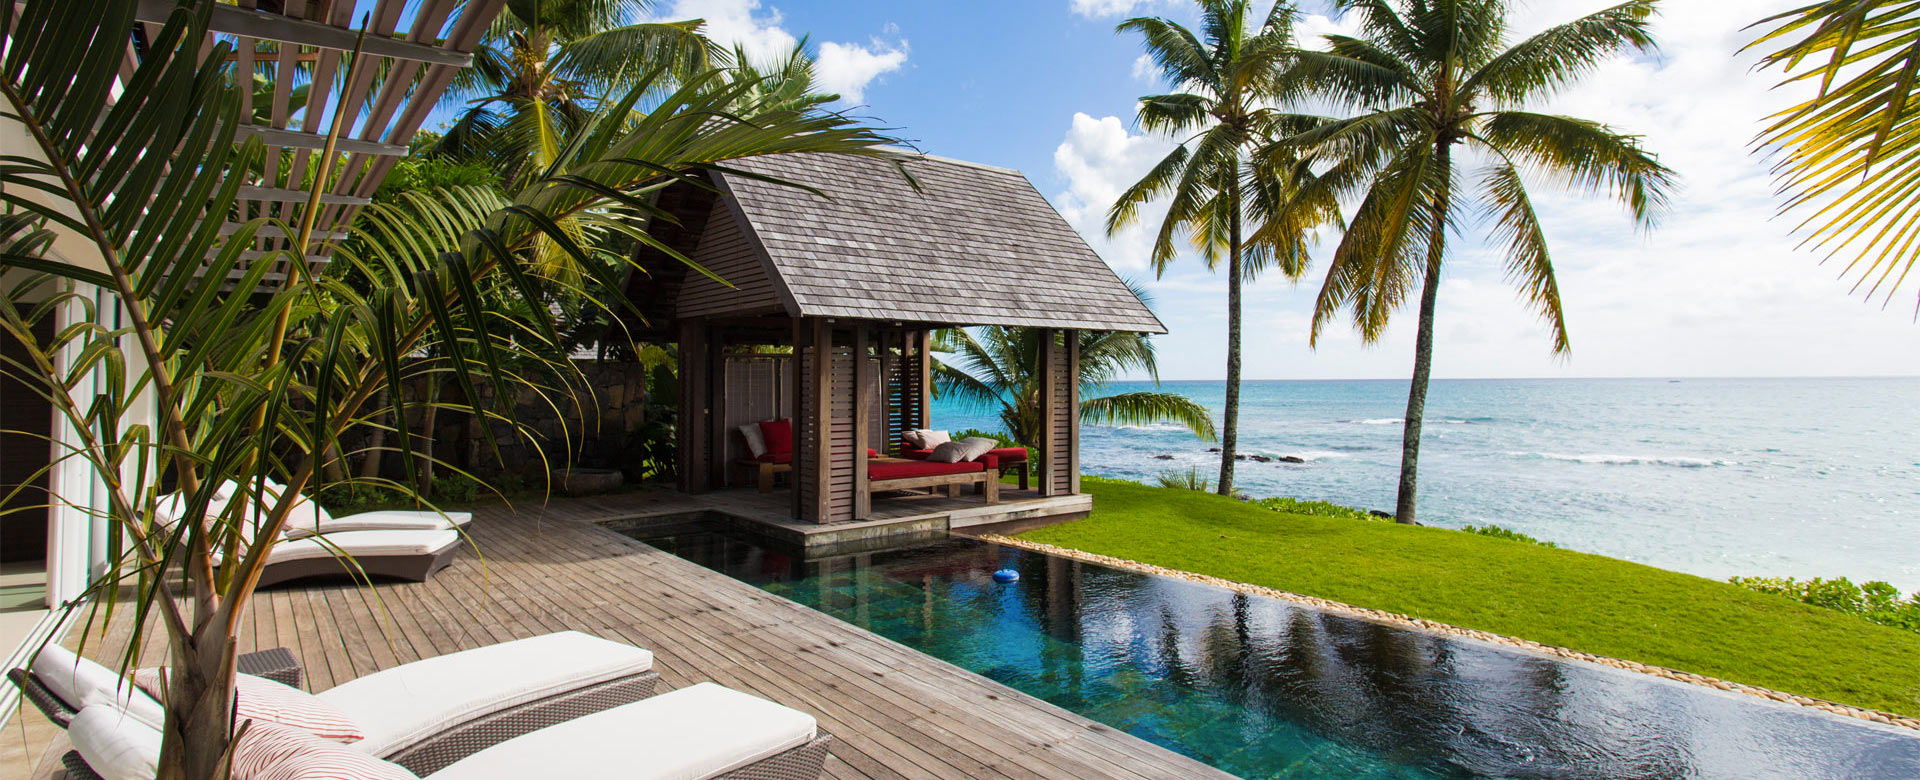 9cb62f75383 Luxury villas in Mauritius with swimming pool and direct beach access